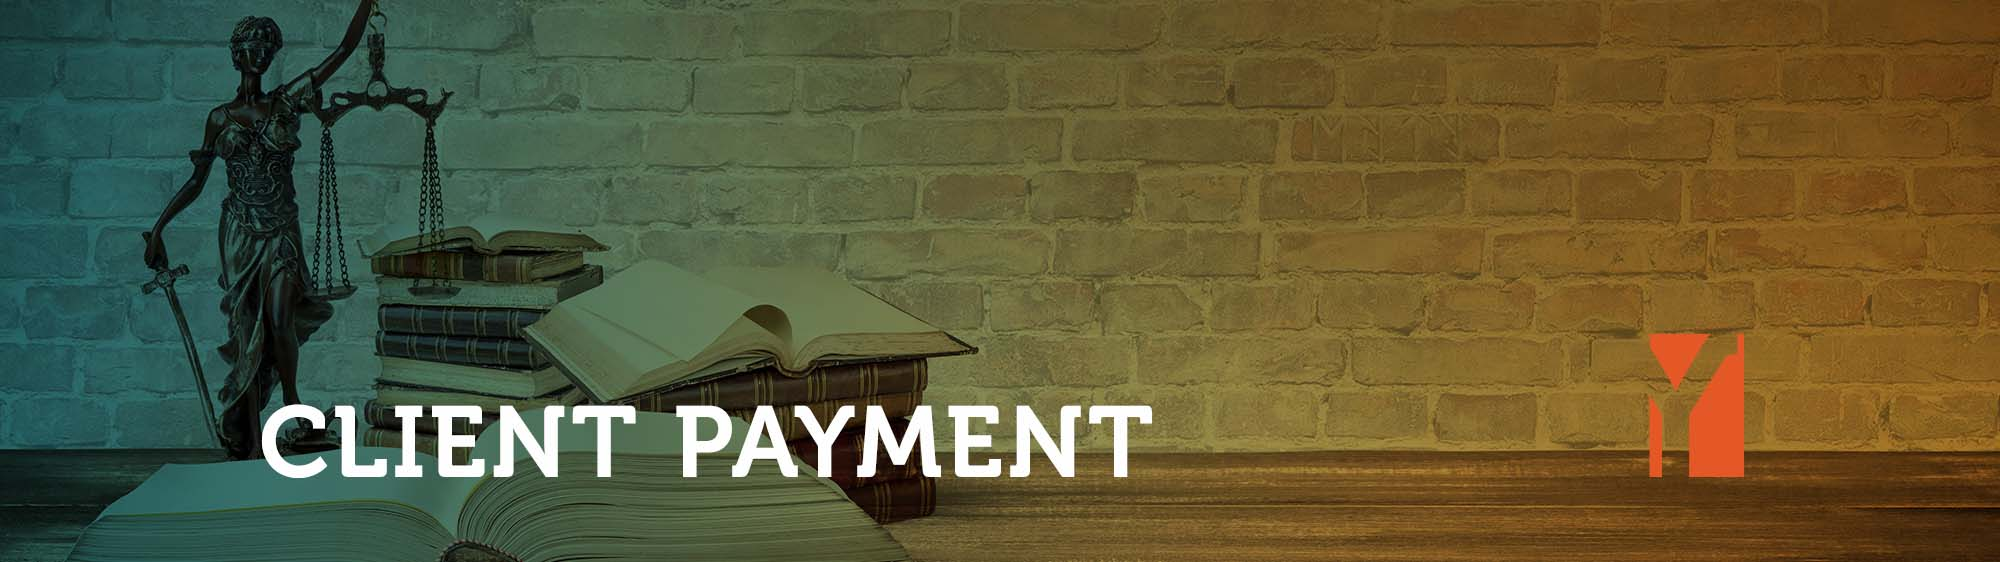 Young Family Law - Client Payment Banner